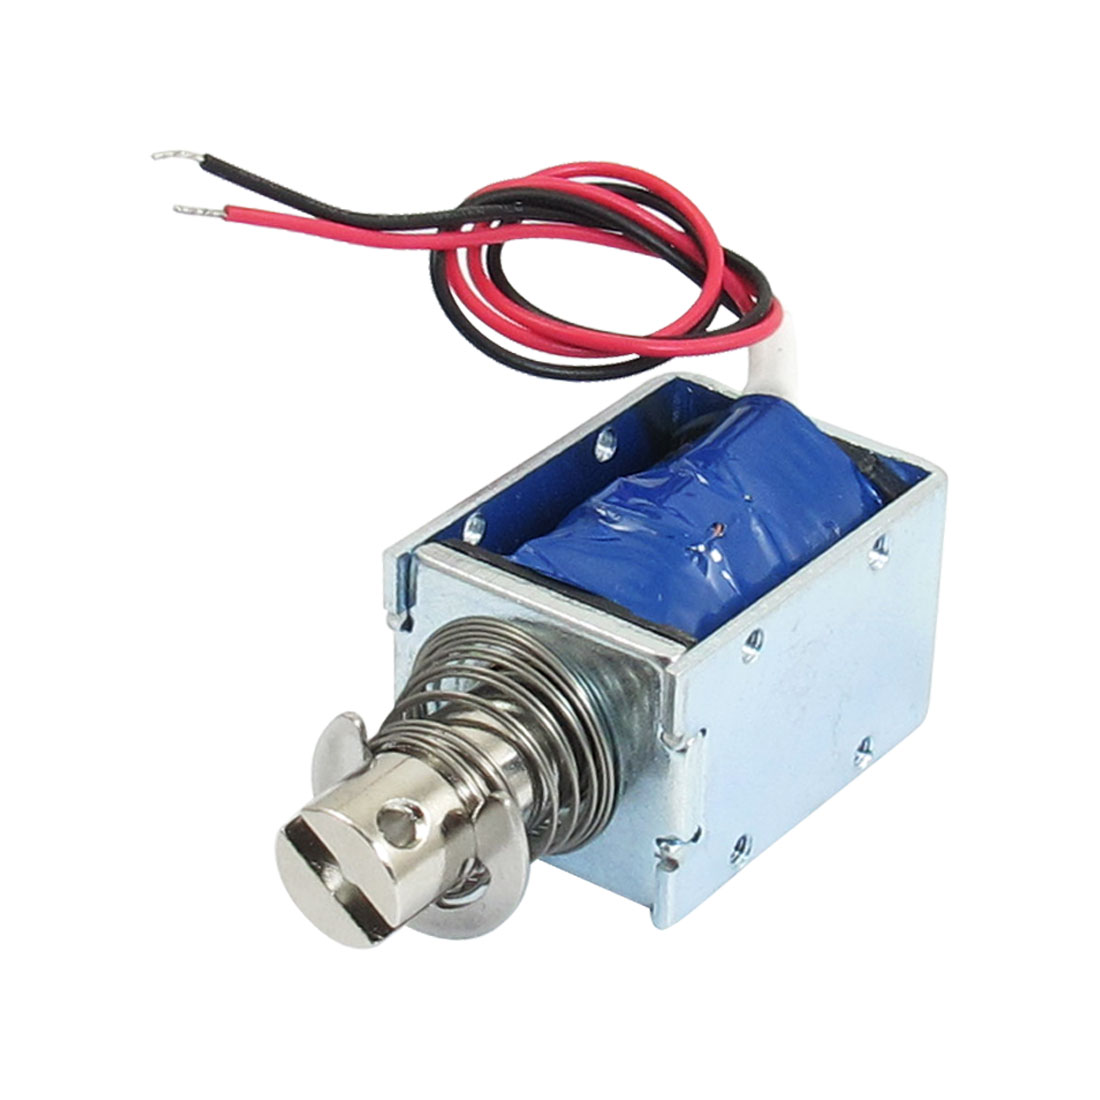 1kg Force 10mm Stroke Push Type Open Frame Solenoid Electromagnet DC 12V